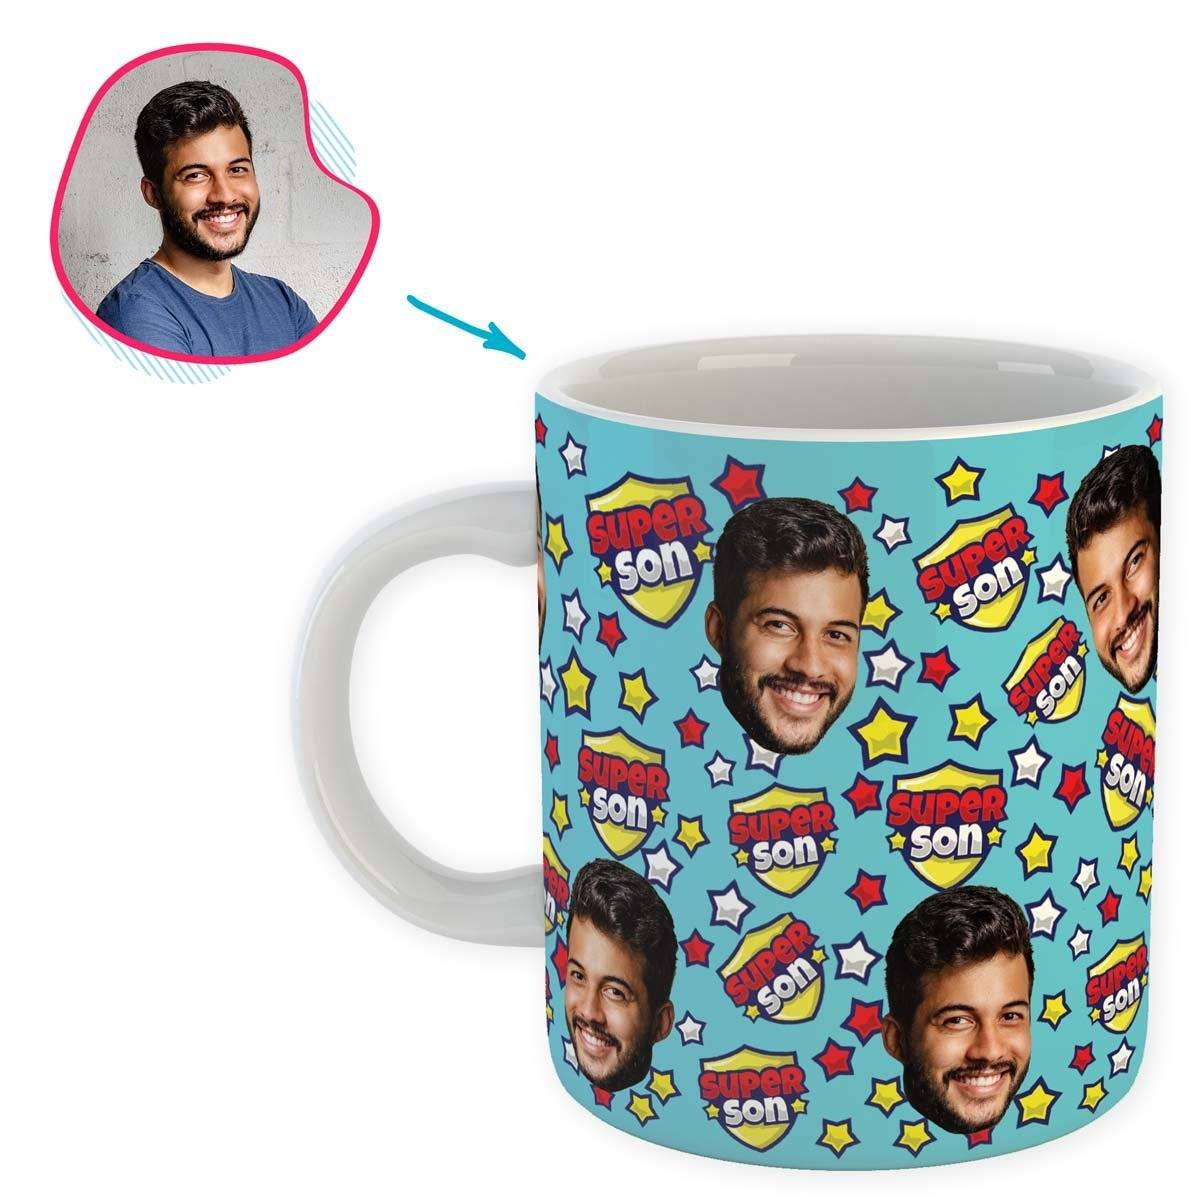 blue Super Son mug personalized with photo of face printed on it